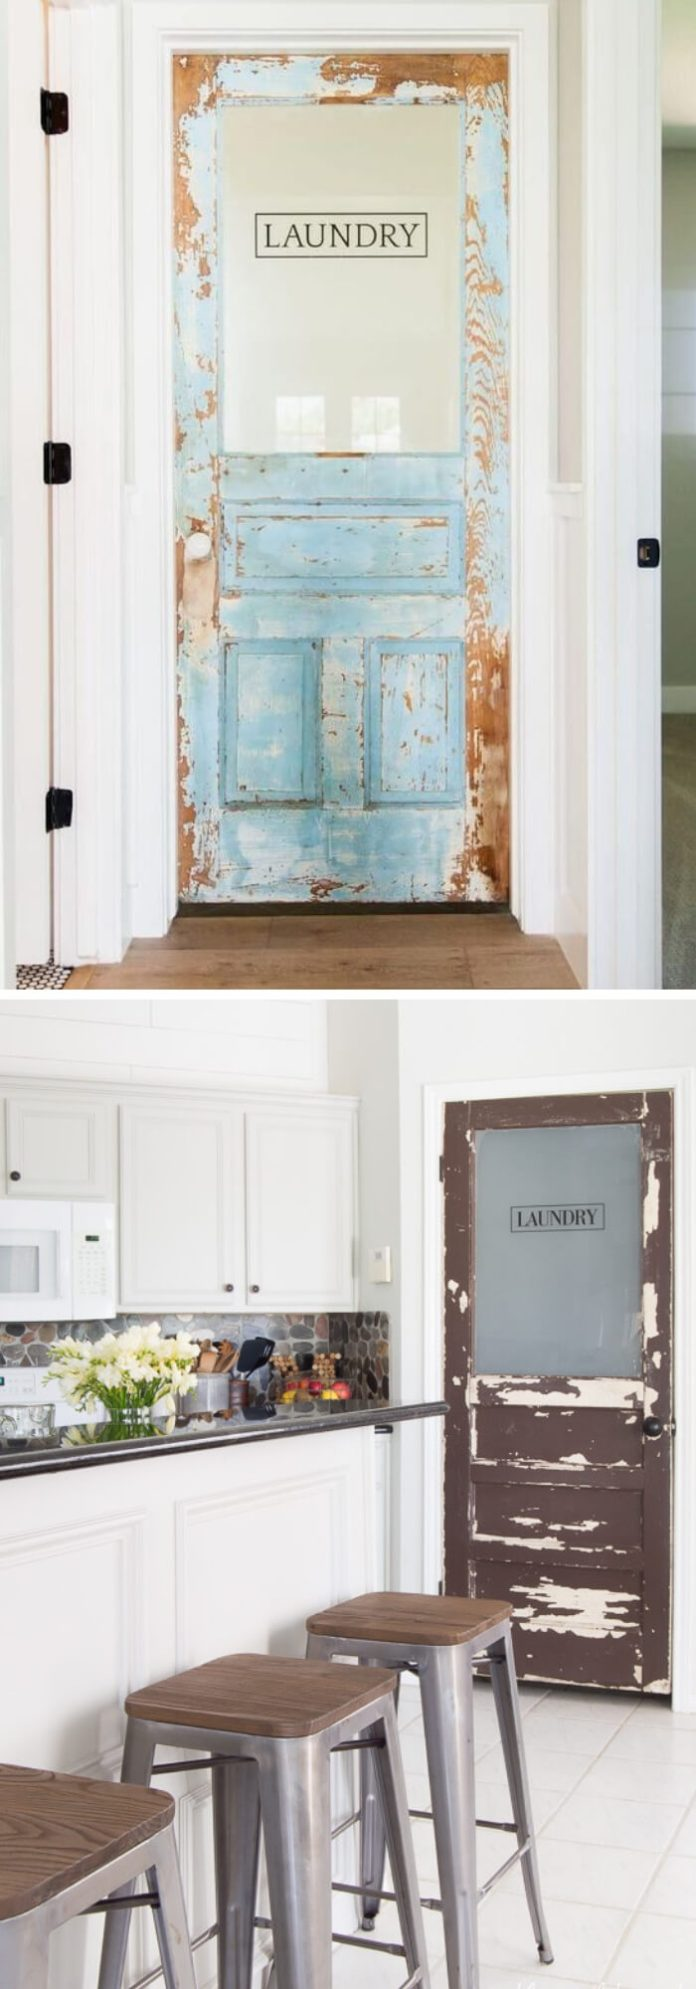 DIY Farmhouse Laundry Room Ideas: Rustic laundry door update